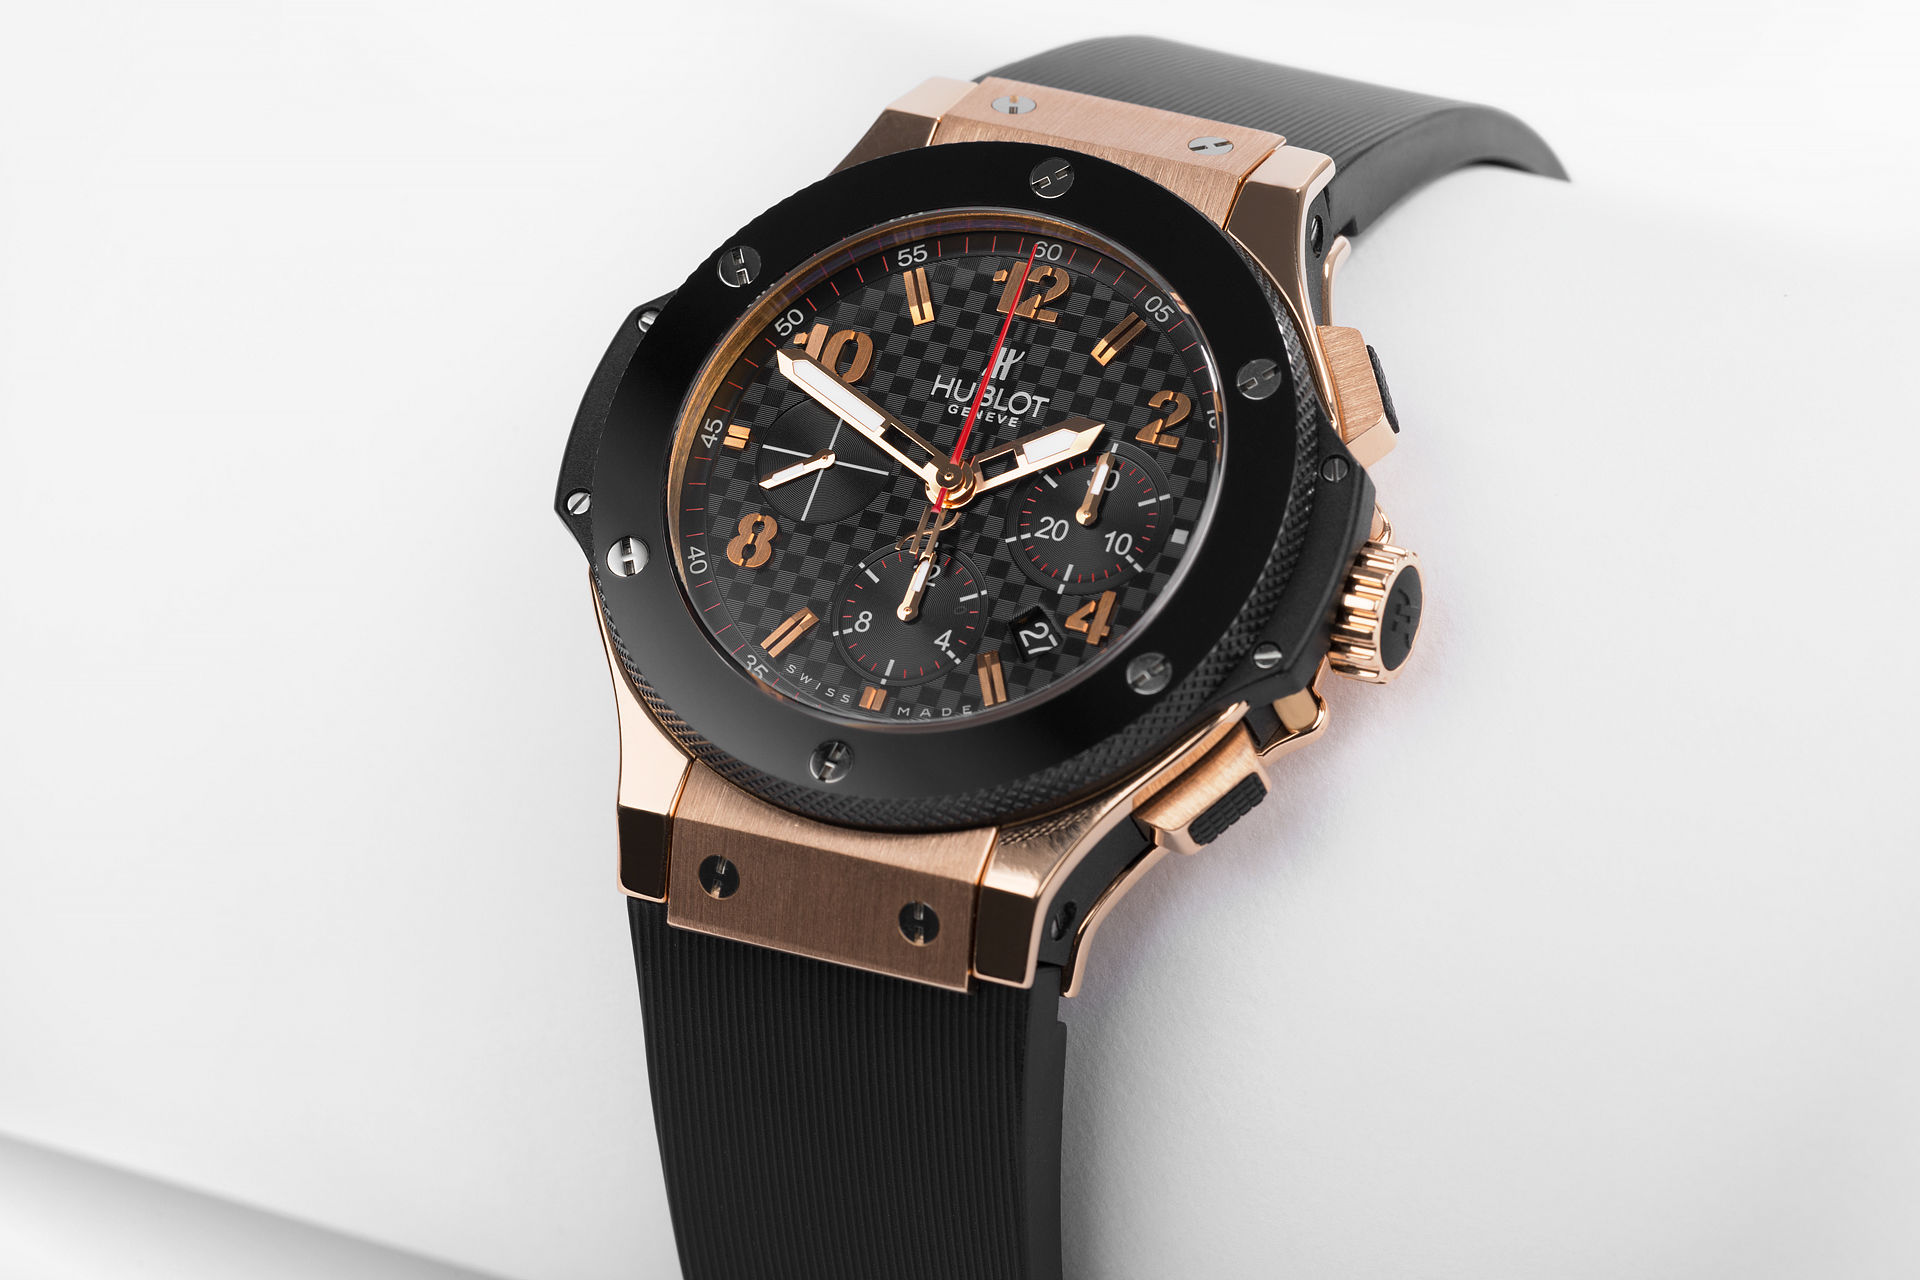 ref 301.PB.131.RX | 44mm Rose Gold 'Hublot Warranty' | Hublot Big Bang